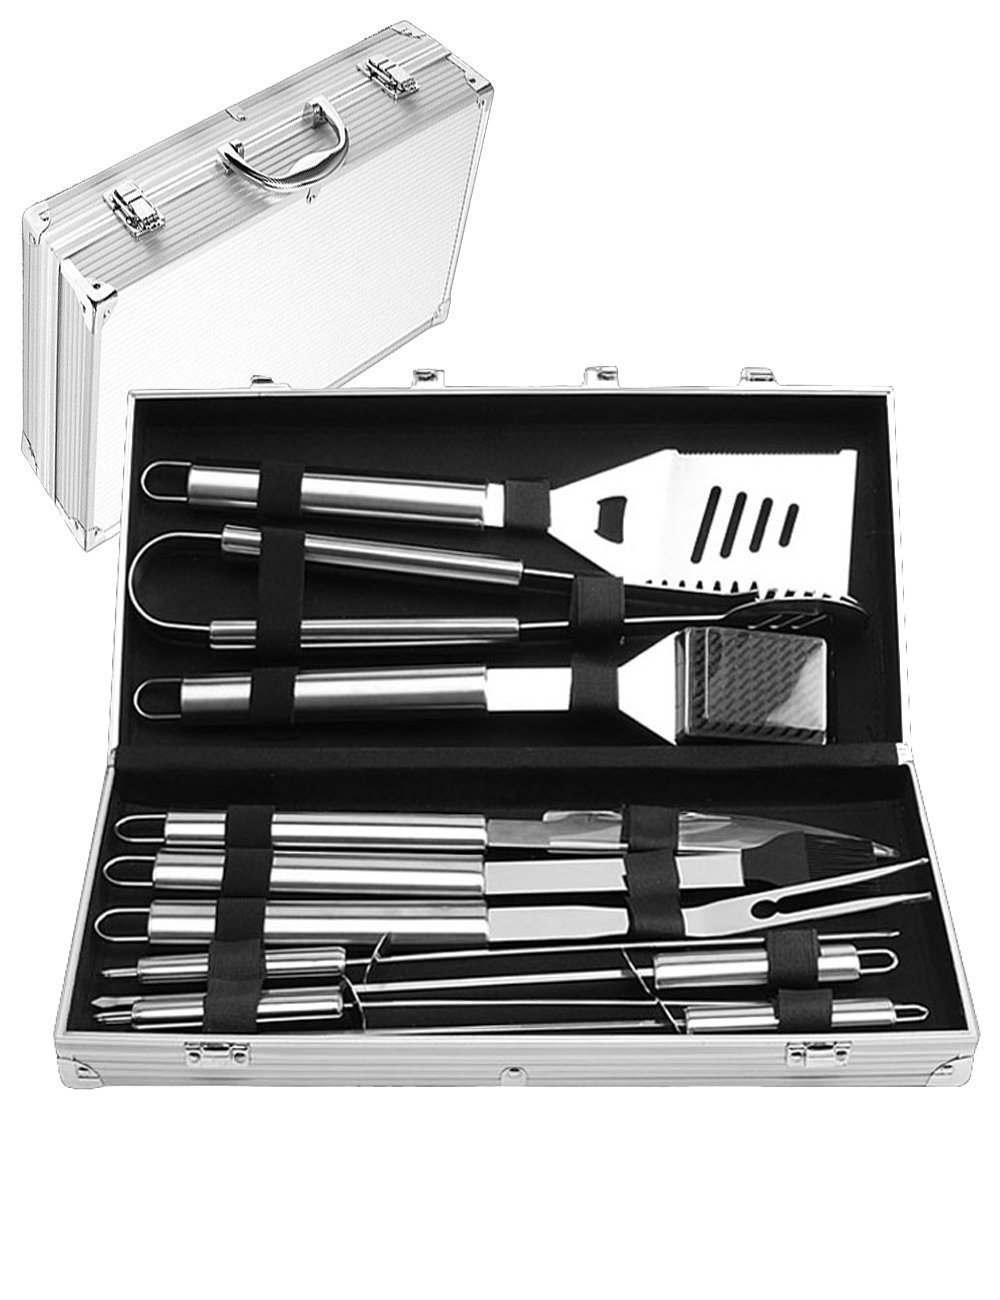 Menschwear BBQ Tool Sets Heavy Duty Stainless Steel Barbecue Accessories Aluminum Case Grill Tools Set (10-Piece) 1 Professional grilling set: grill shovel*1 , fork*1 , knife*1 , tongs*1 , silicone basting brush*1 , grill cleaning brush*1 , skewers*4 . Shovel has a razor sharp serrated edge on one side for easy cutting of meat, a meat tenderizer on the other side, and a built-in bottle opener. Durable and easy to clean: All stainless steel, this 10-piece grill set won¡¯t chip, tarnish or rust. Stylish and safe: Extended stainless handles add elegance and keep your hands away from the flames.